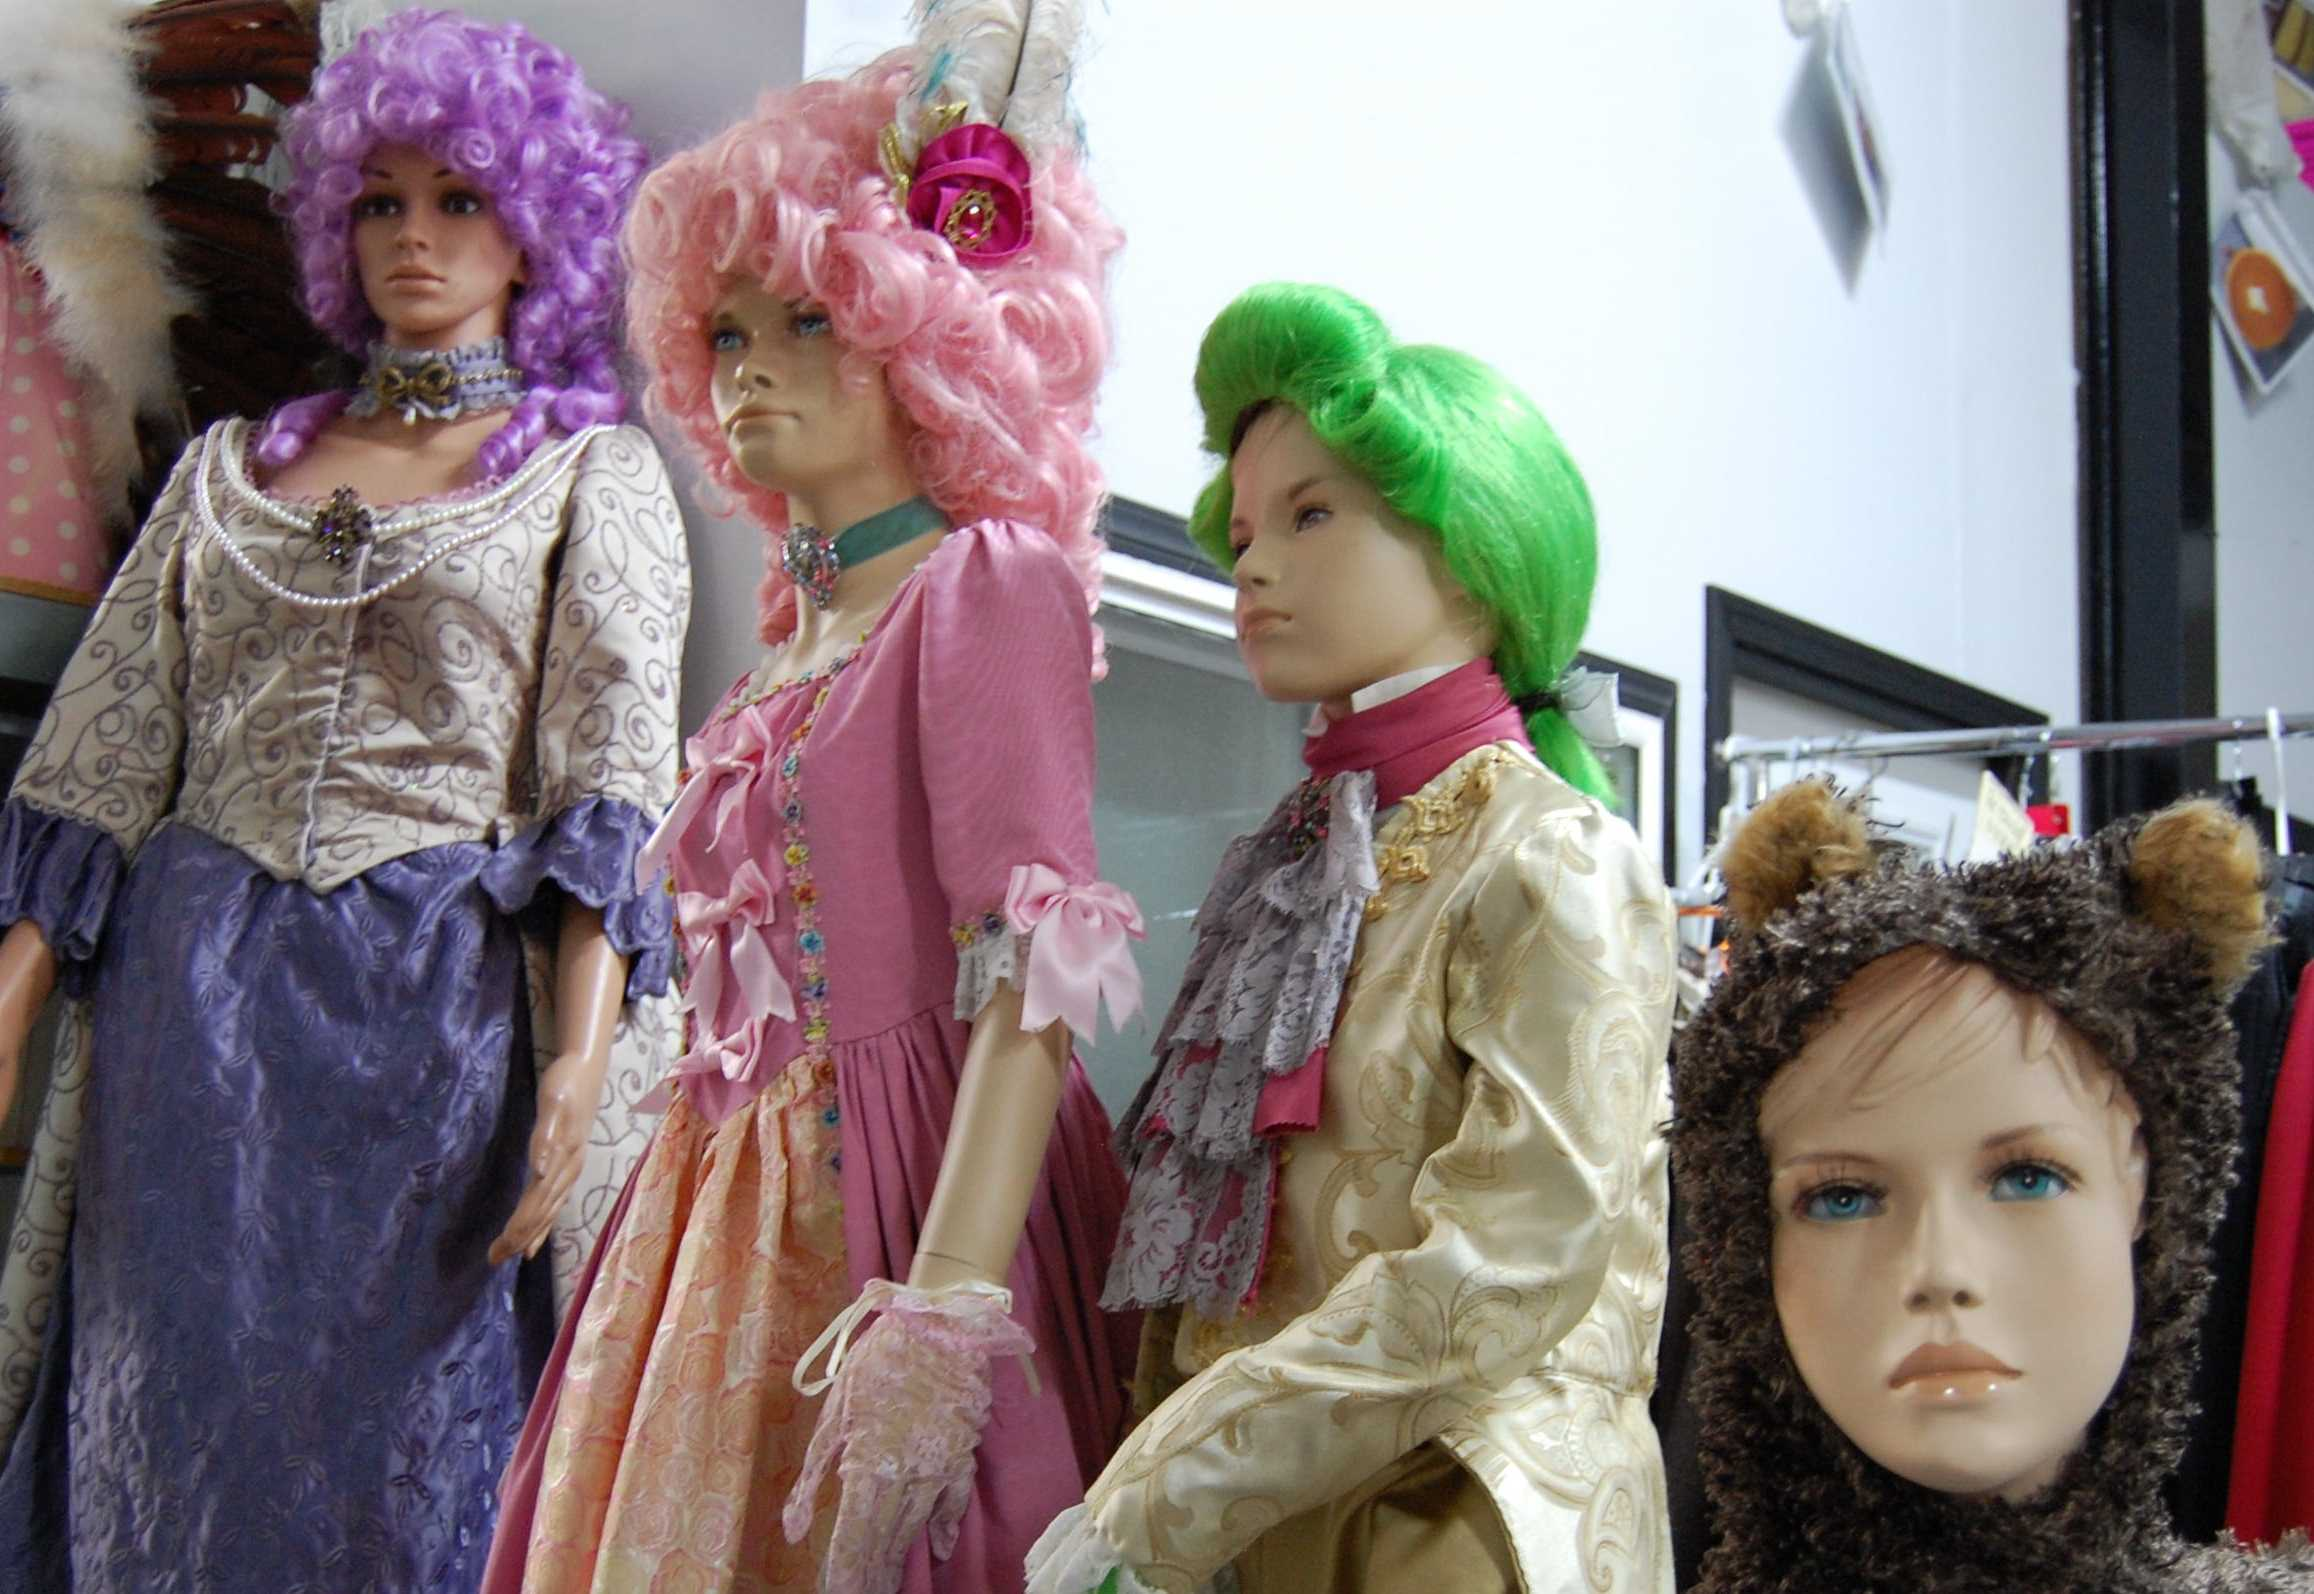 Some costumes that are displayed in the Costume House.